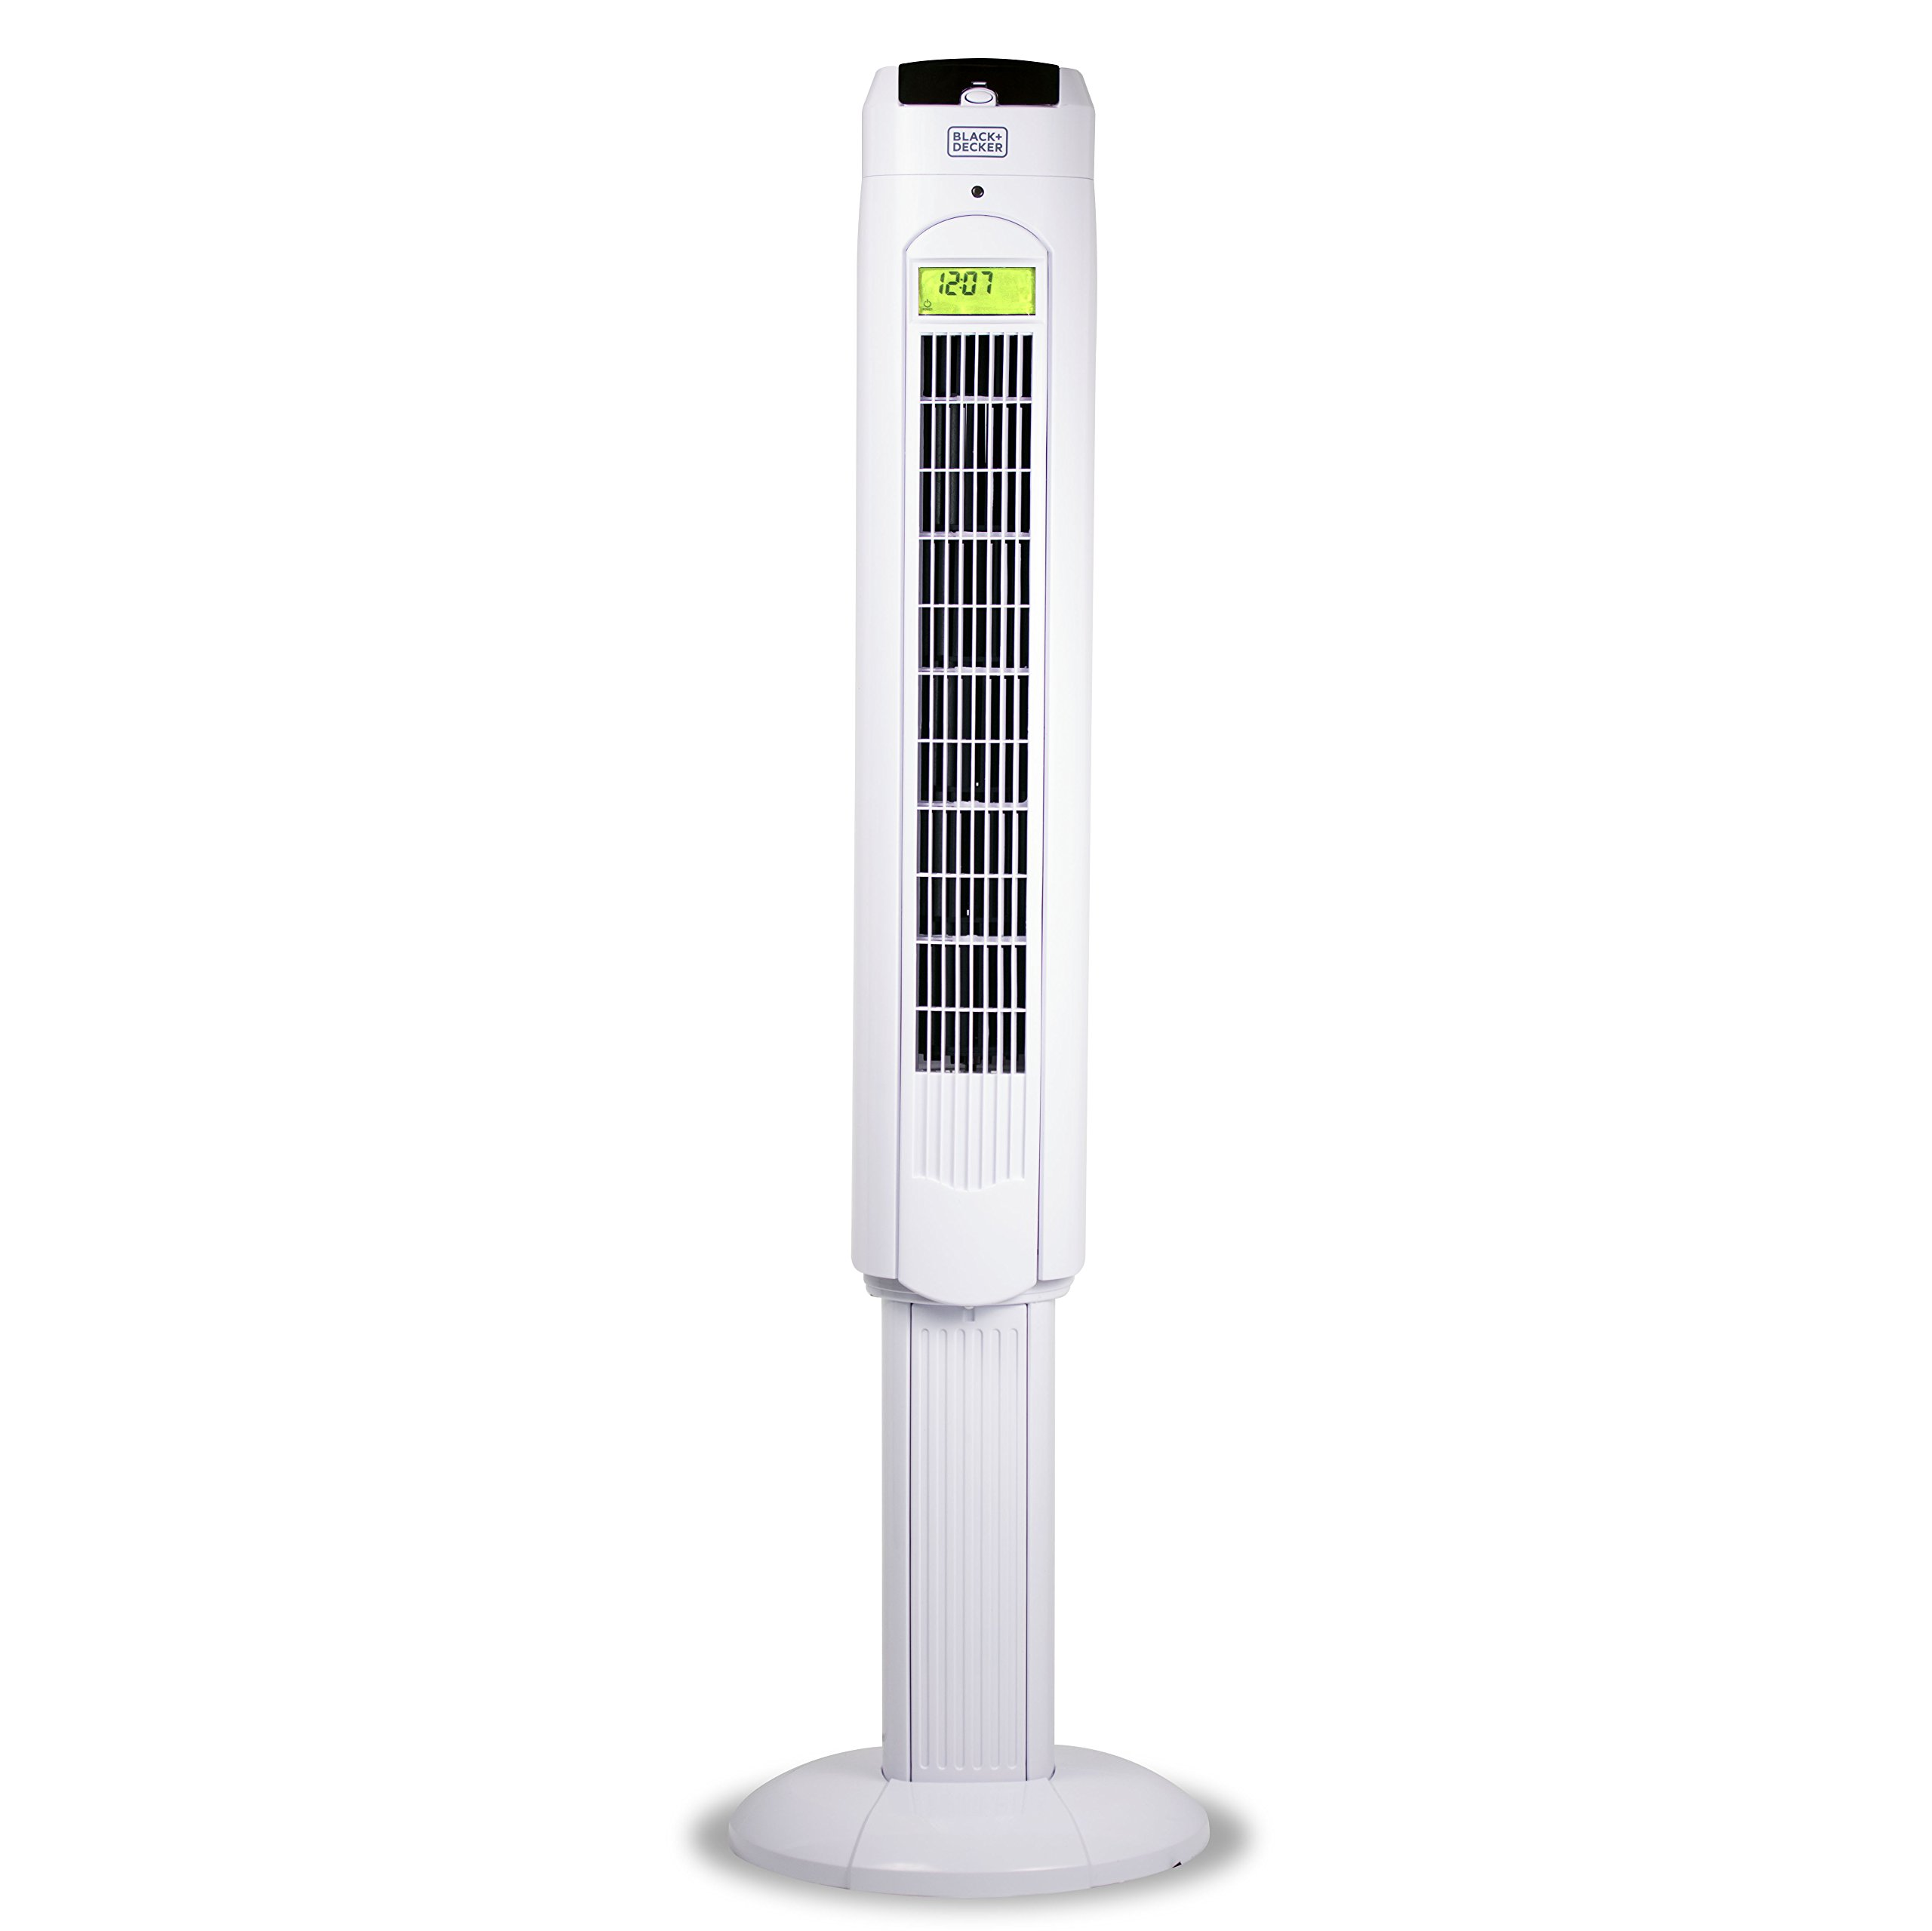 Quiet Digital Tower Fan With Remote Control 48w 48 In Top